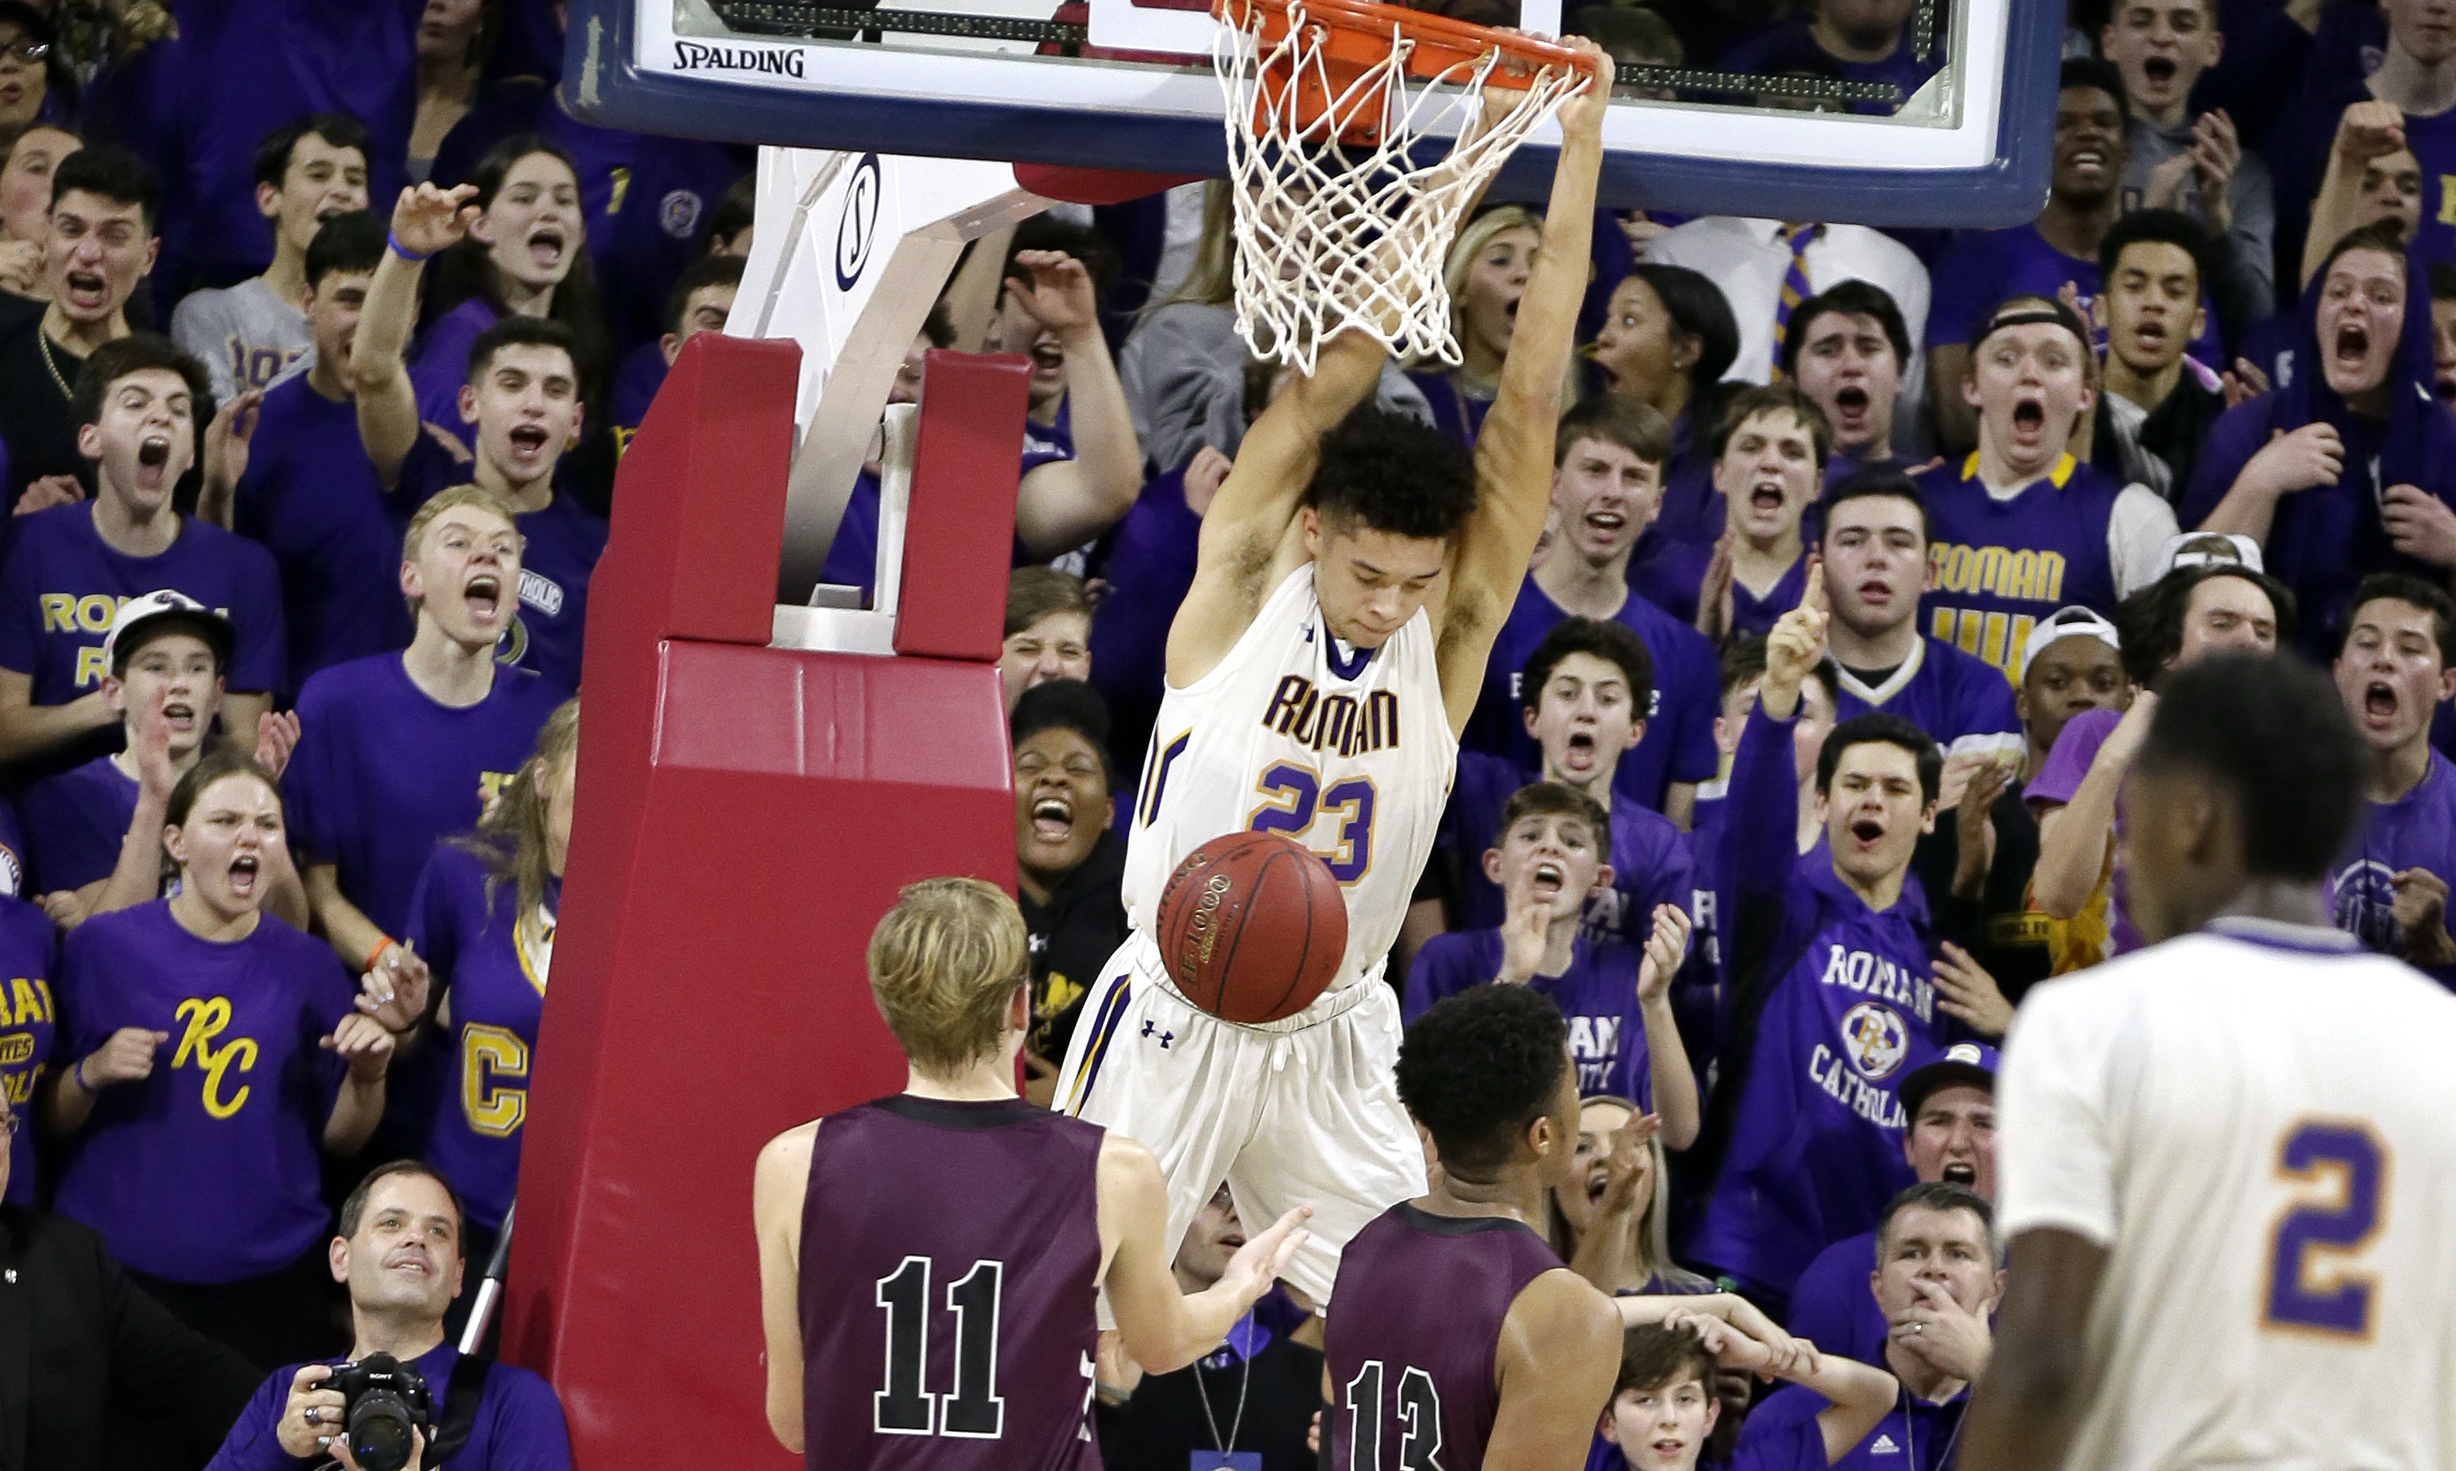 Roman Catholics Seth Lundy 23) hangs on the rim after his dunk against St. Josephs Prep in last seasons Catholic League semifinal. The Cahillites won, 69-66.